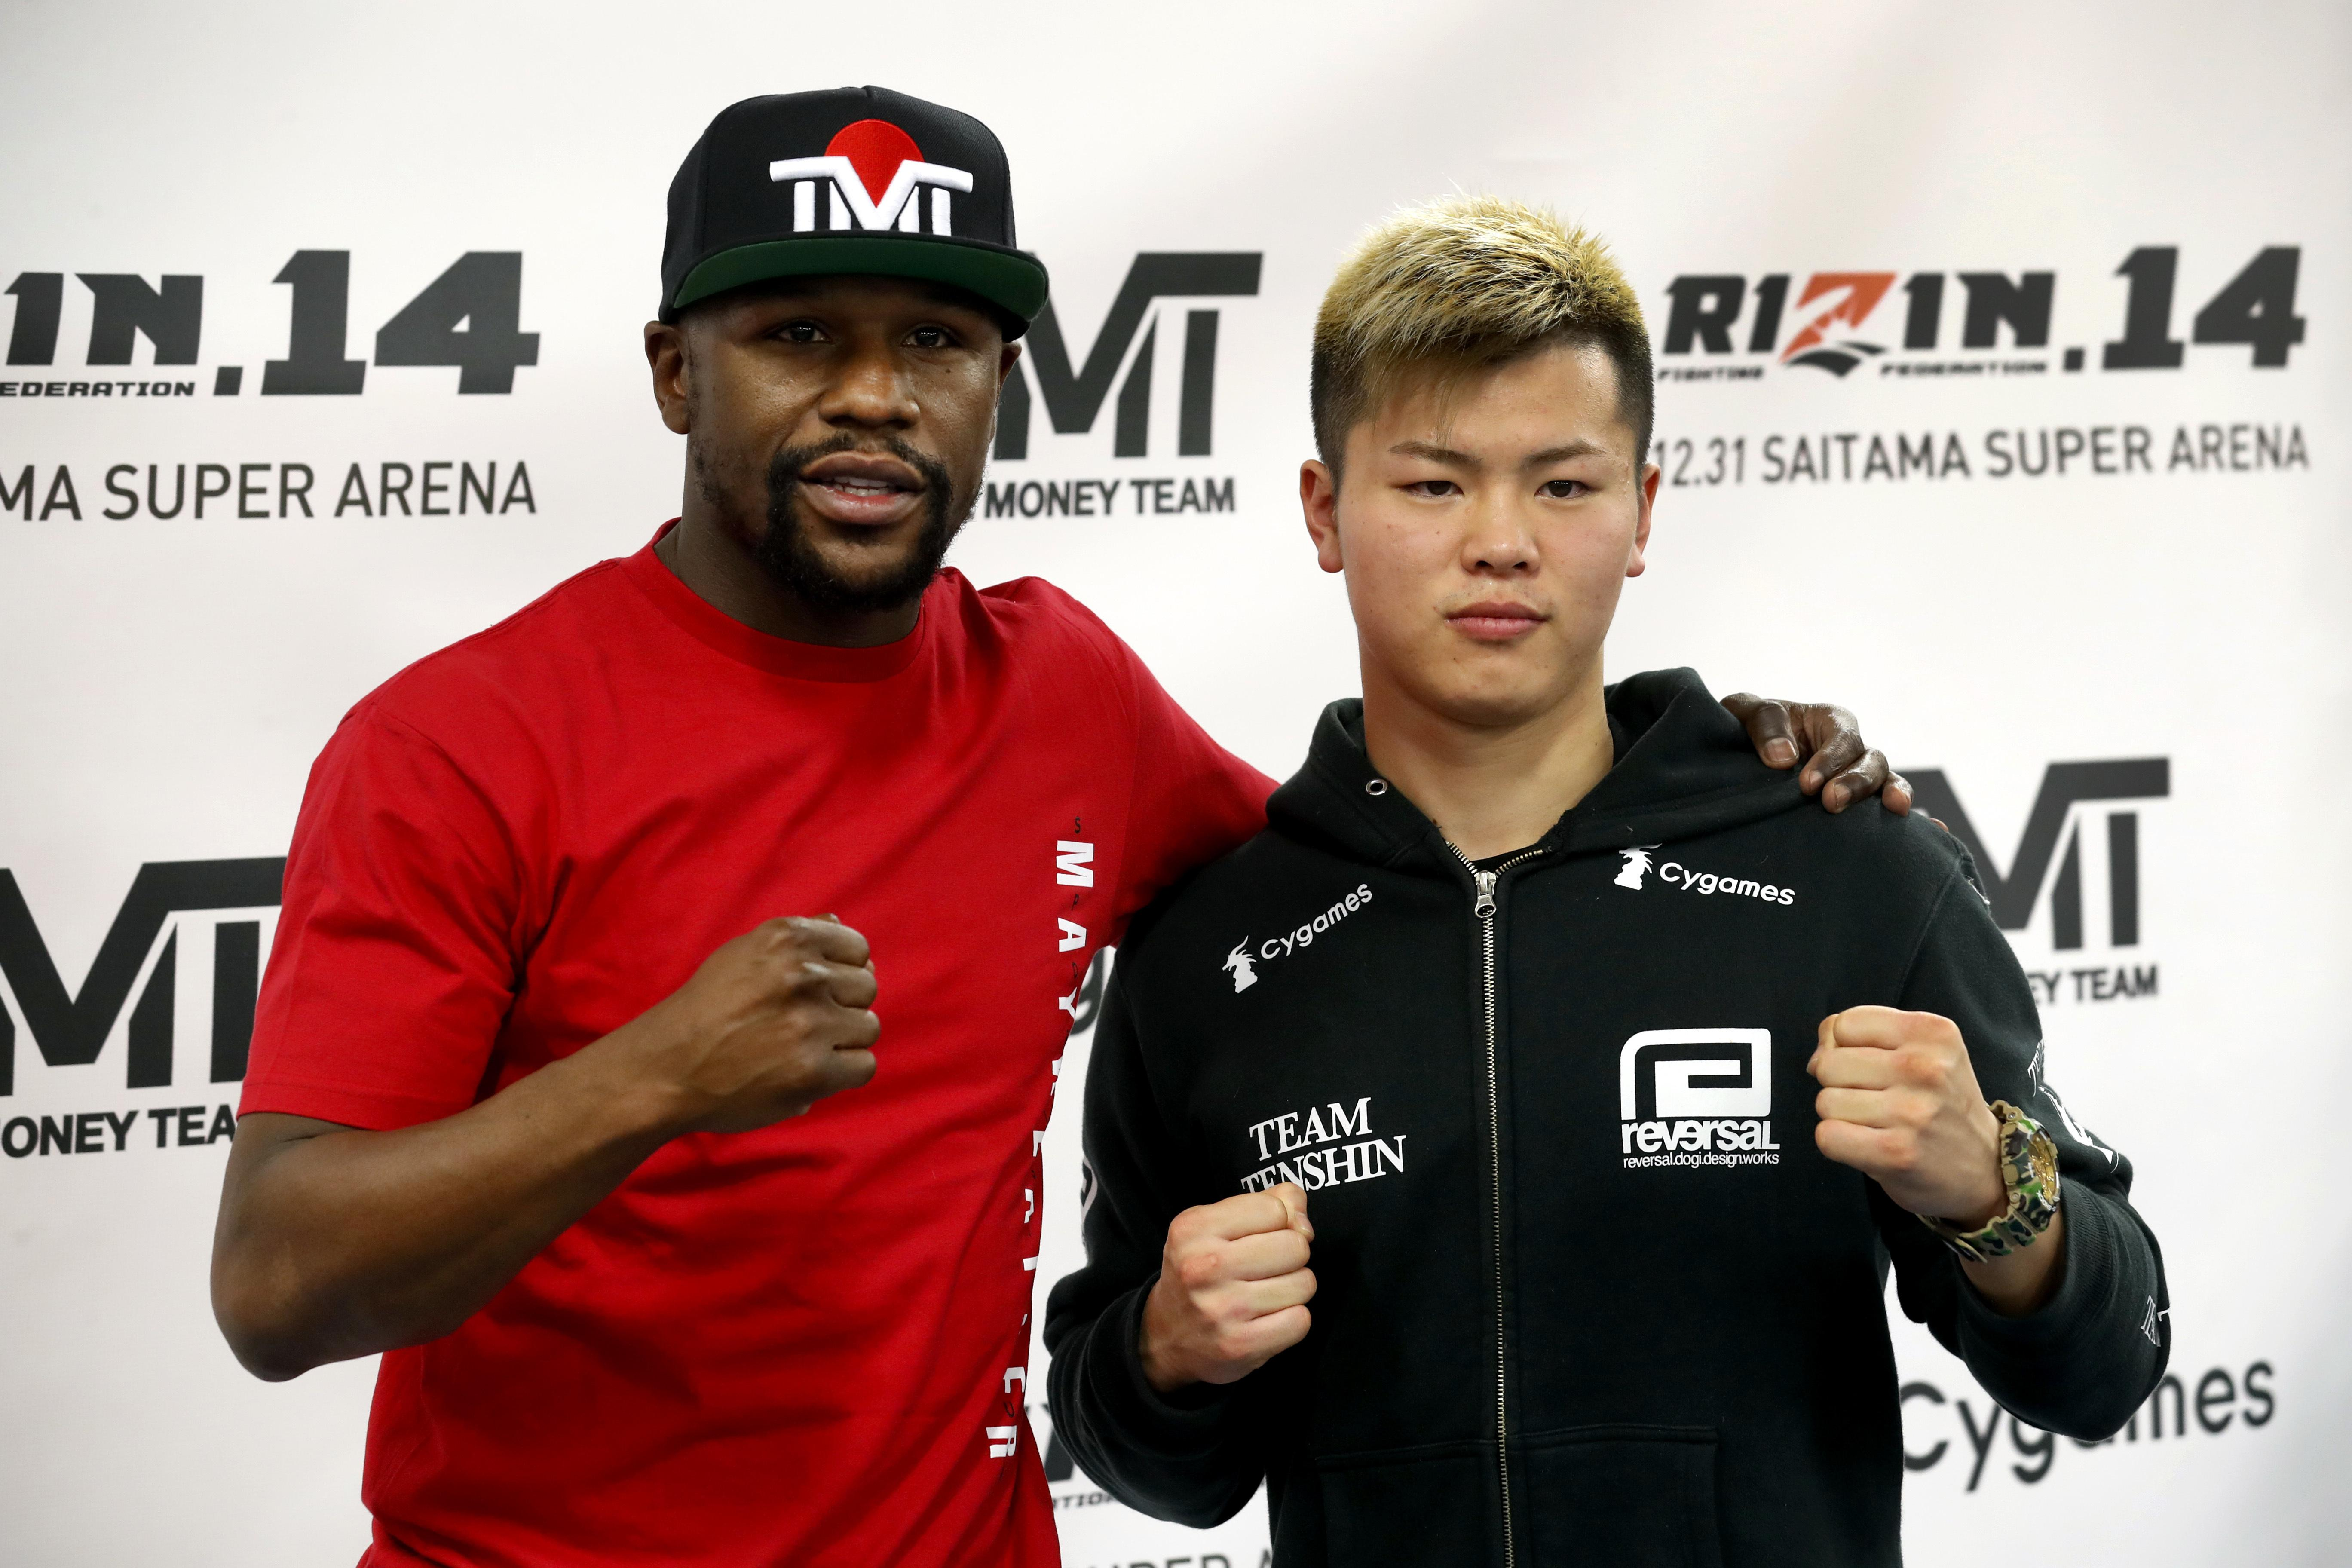 Mayweather is set to fight Tenshin Naksukawa in a three-round exhibition boxing fight